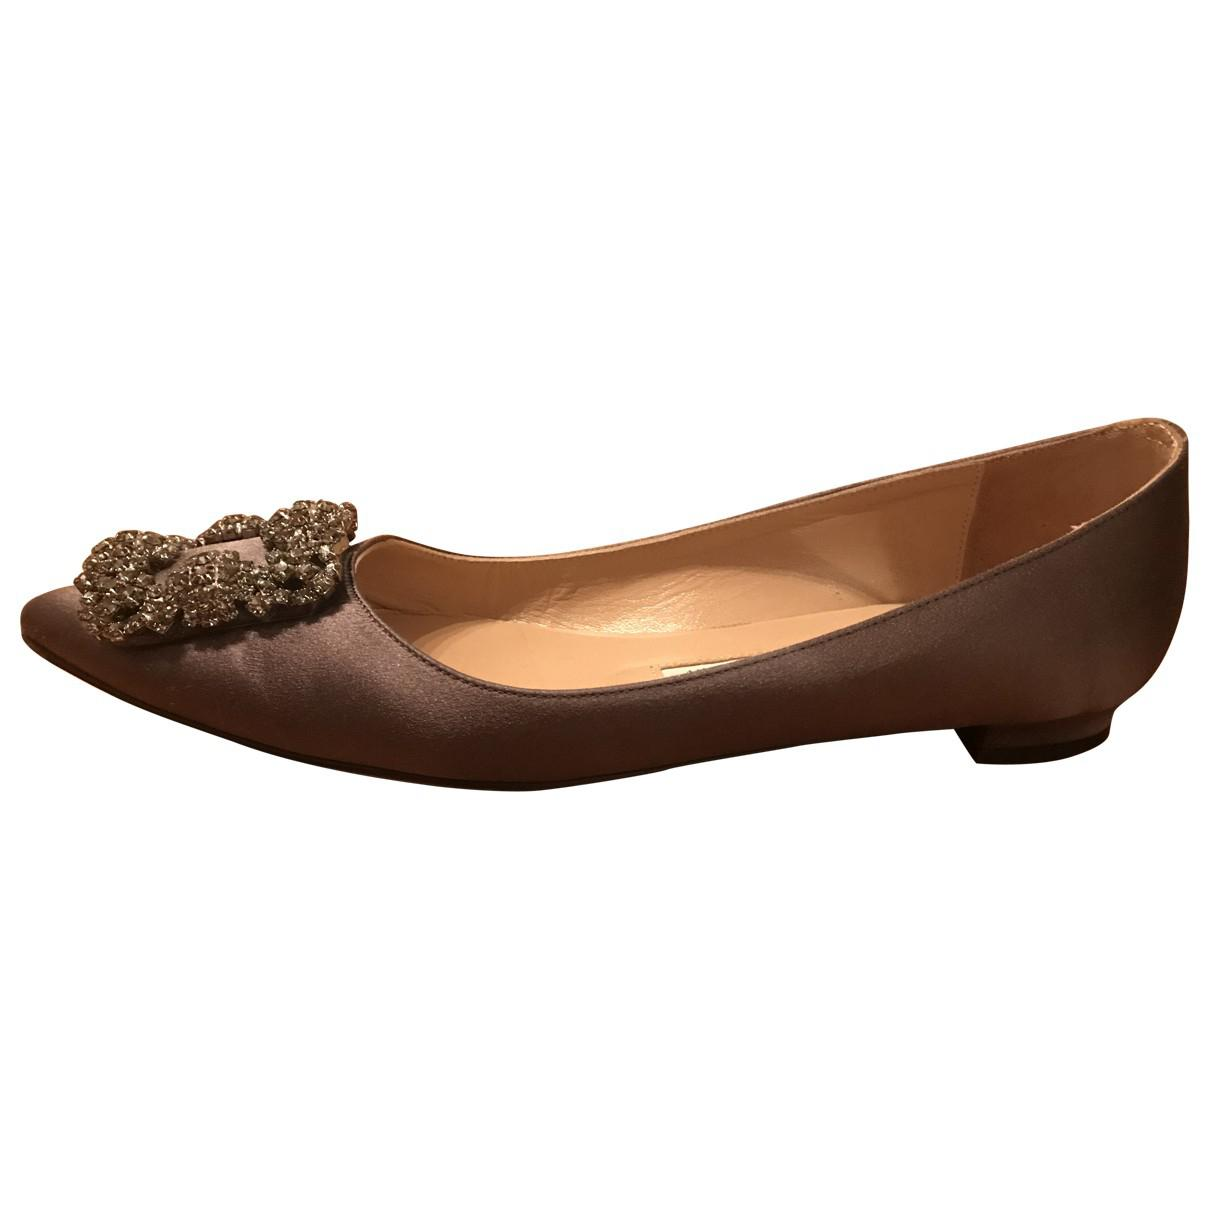 ad67bc2a7c12 Lyst - Manolo Blahnik Hangisi Cloth Ballet Flats in Gray